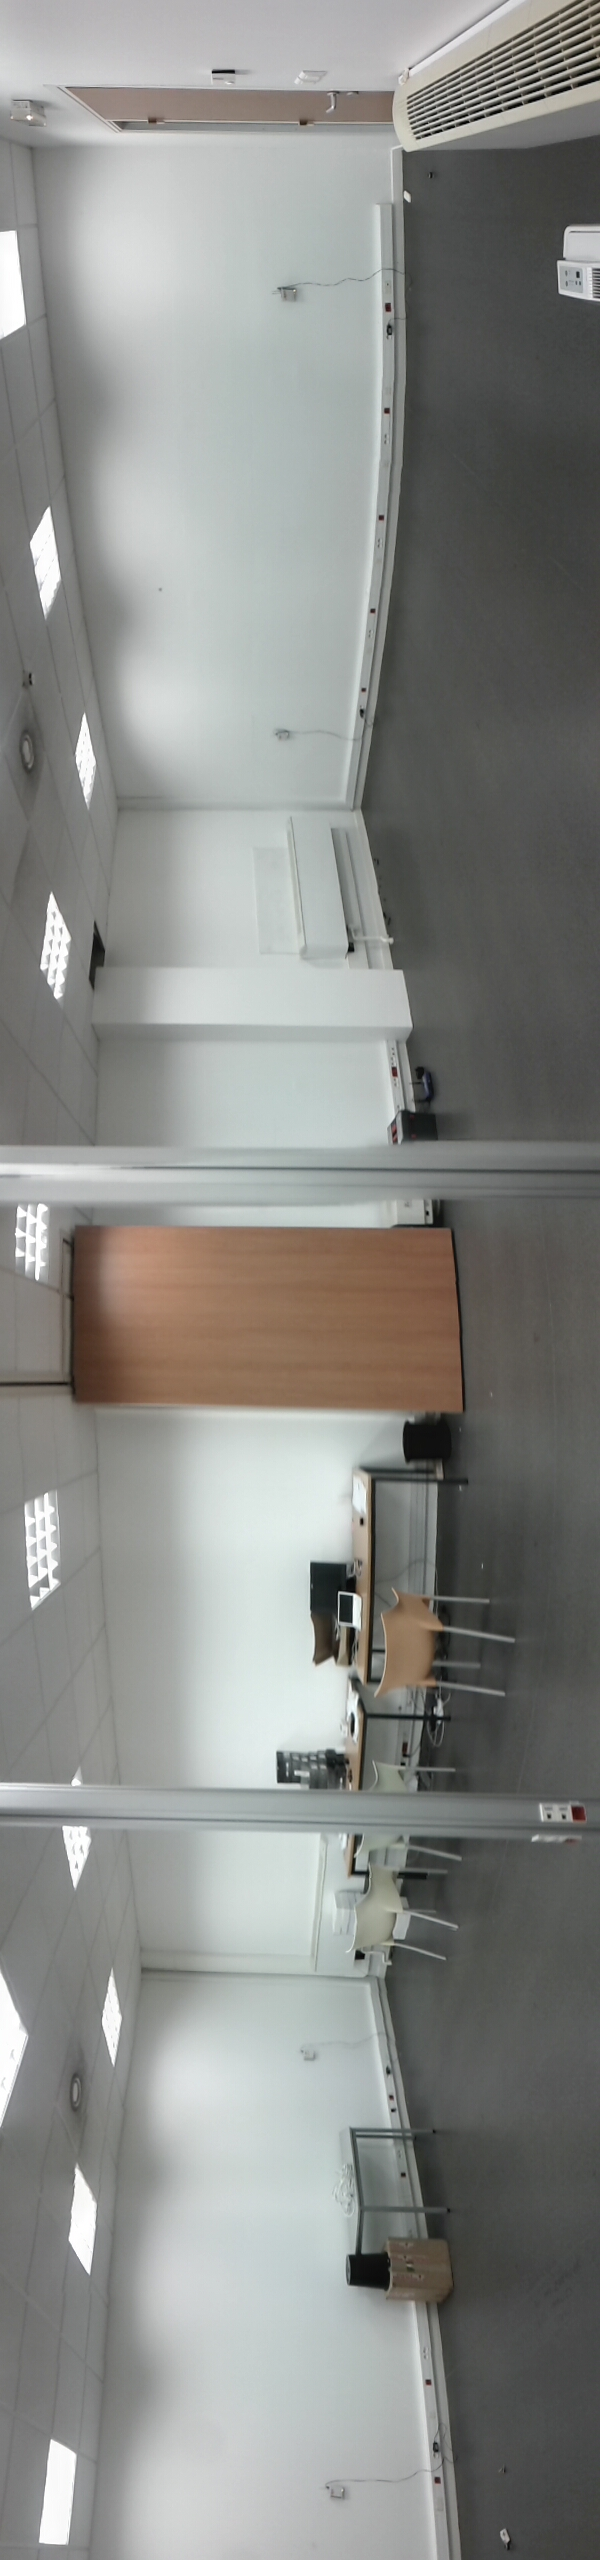 /mcy/owlps-experiments/src/branch/master/2012-numerica/figures/room_panorama_180.jpg